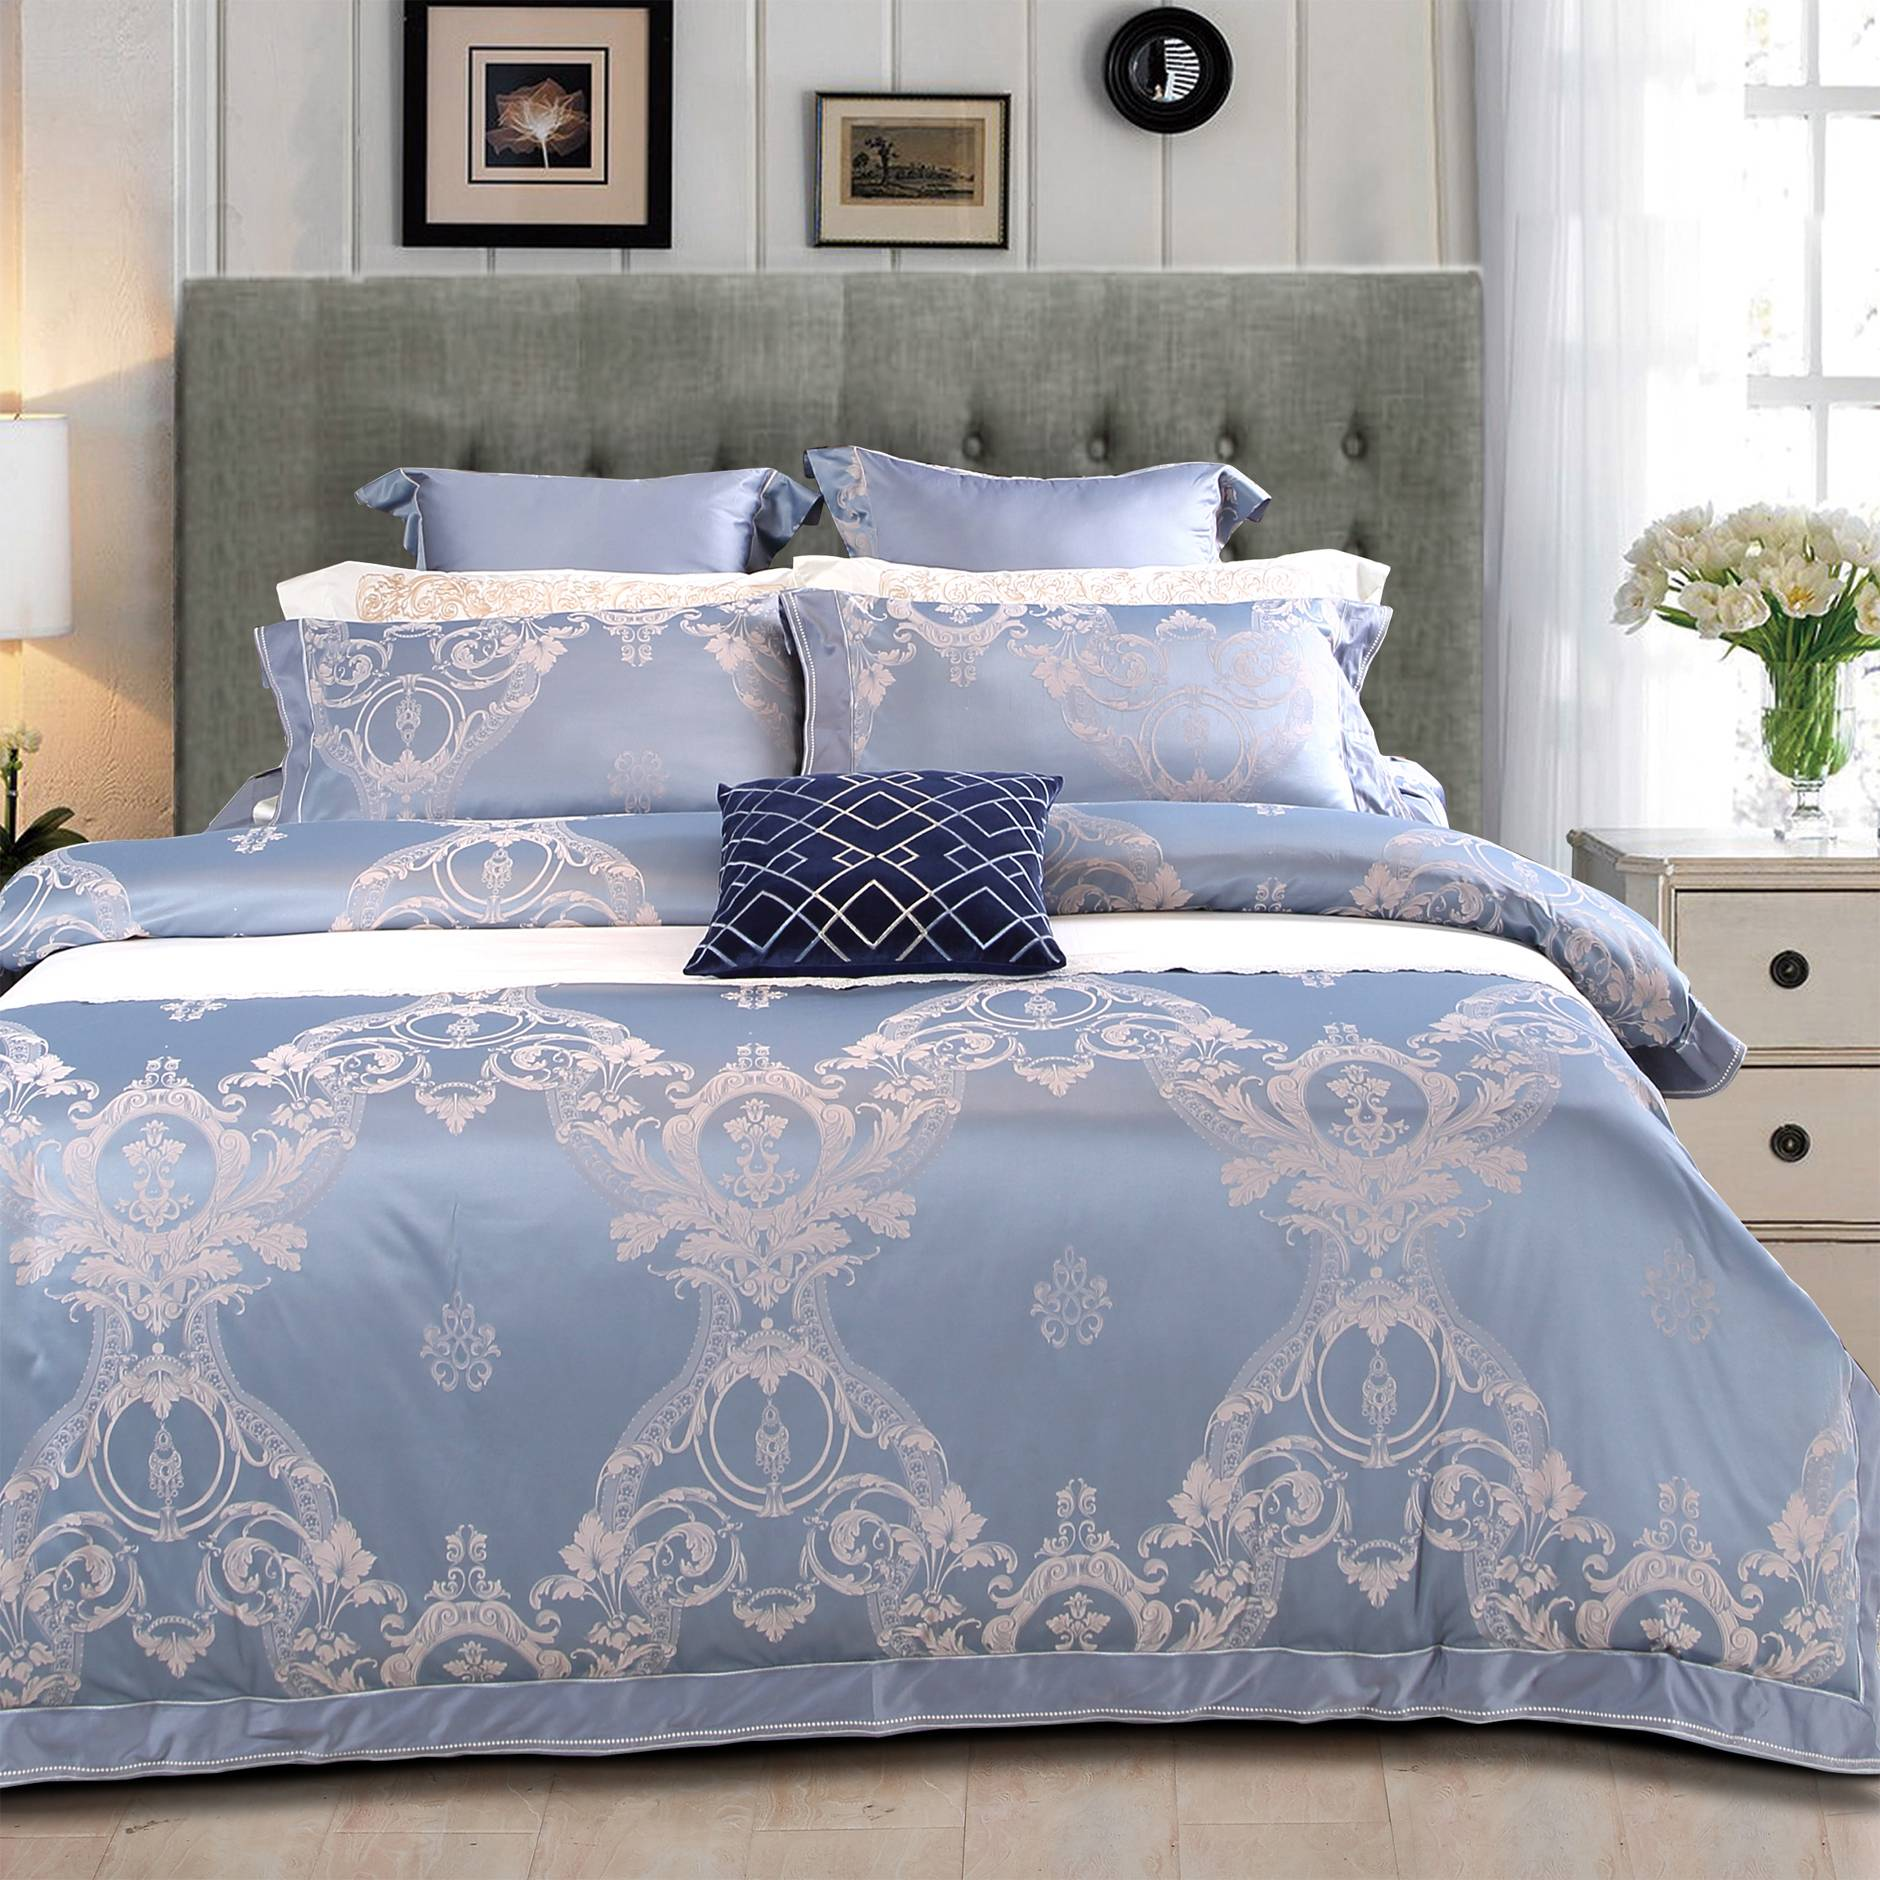 Refreshing Designed Jacquard Sheet set 6978